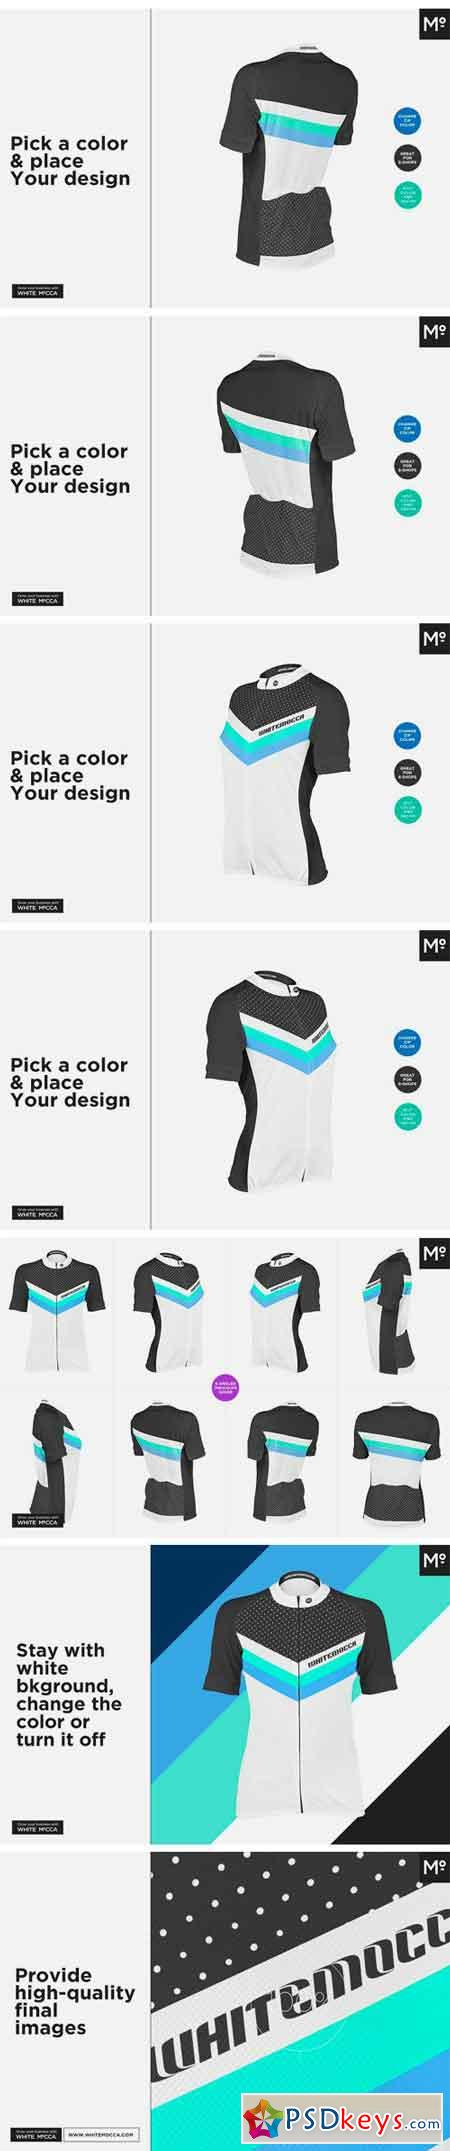 Jersey » Free Download Photoshop Vector Stock image Via Torrent ... c2d7e7a9b